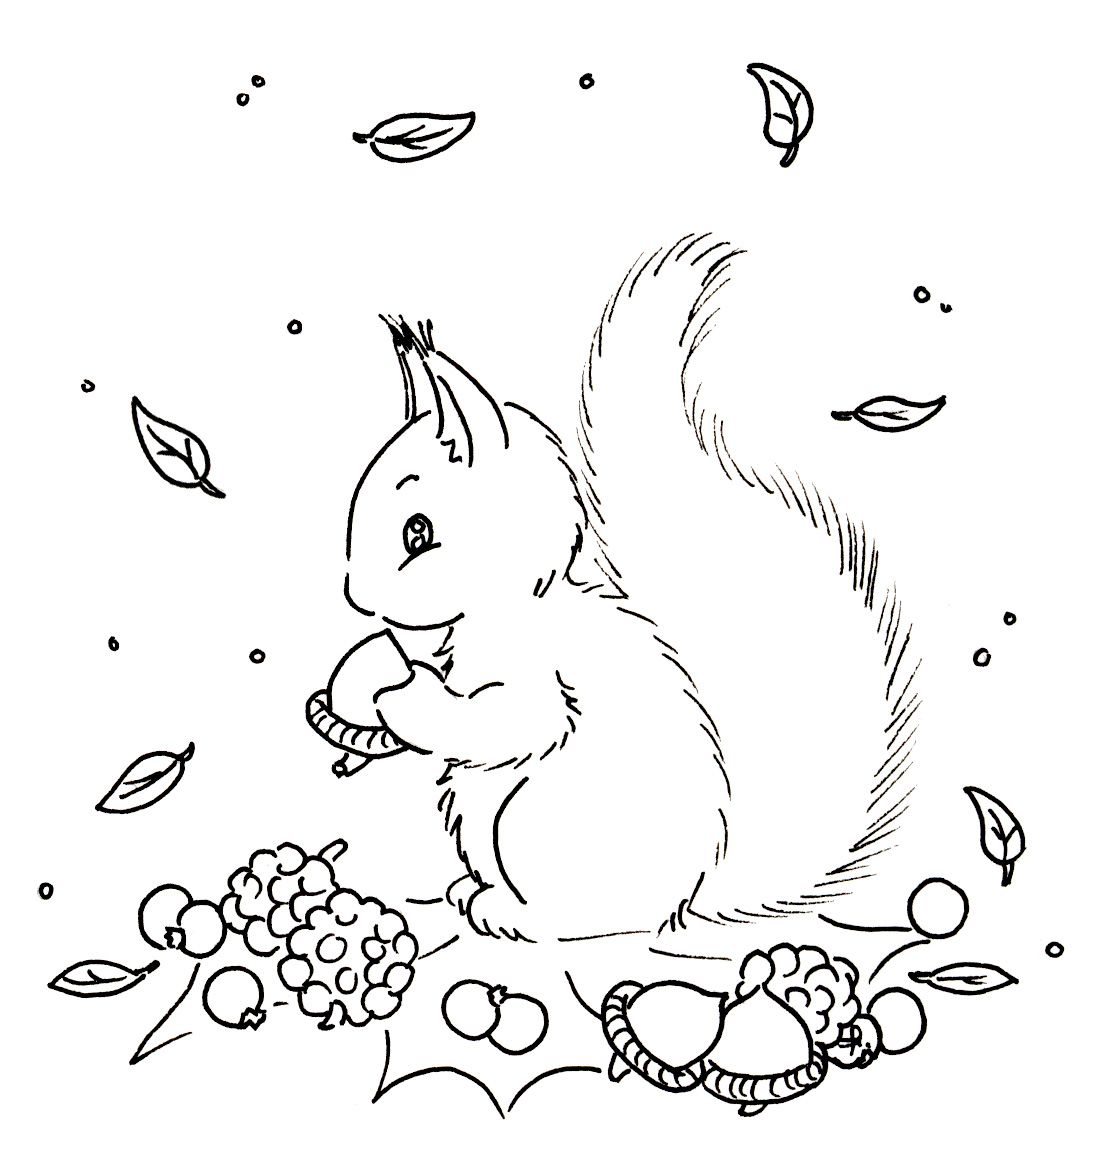 Squirrel Embroidery patterns vintage Embroidery